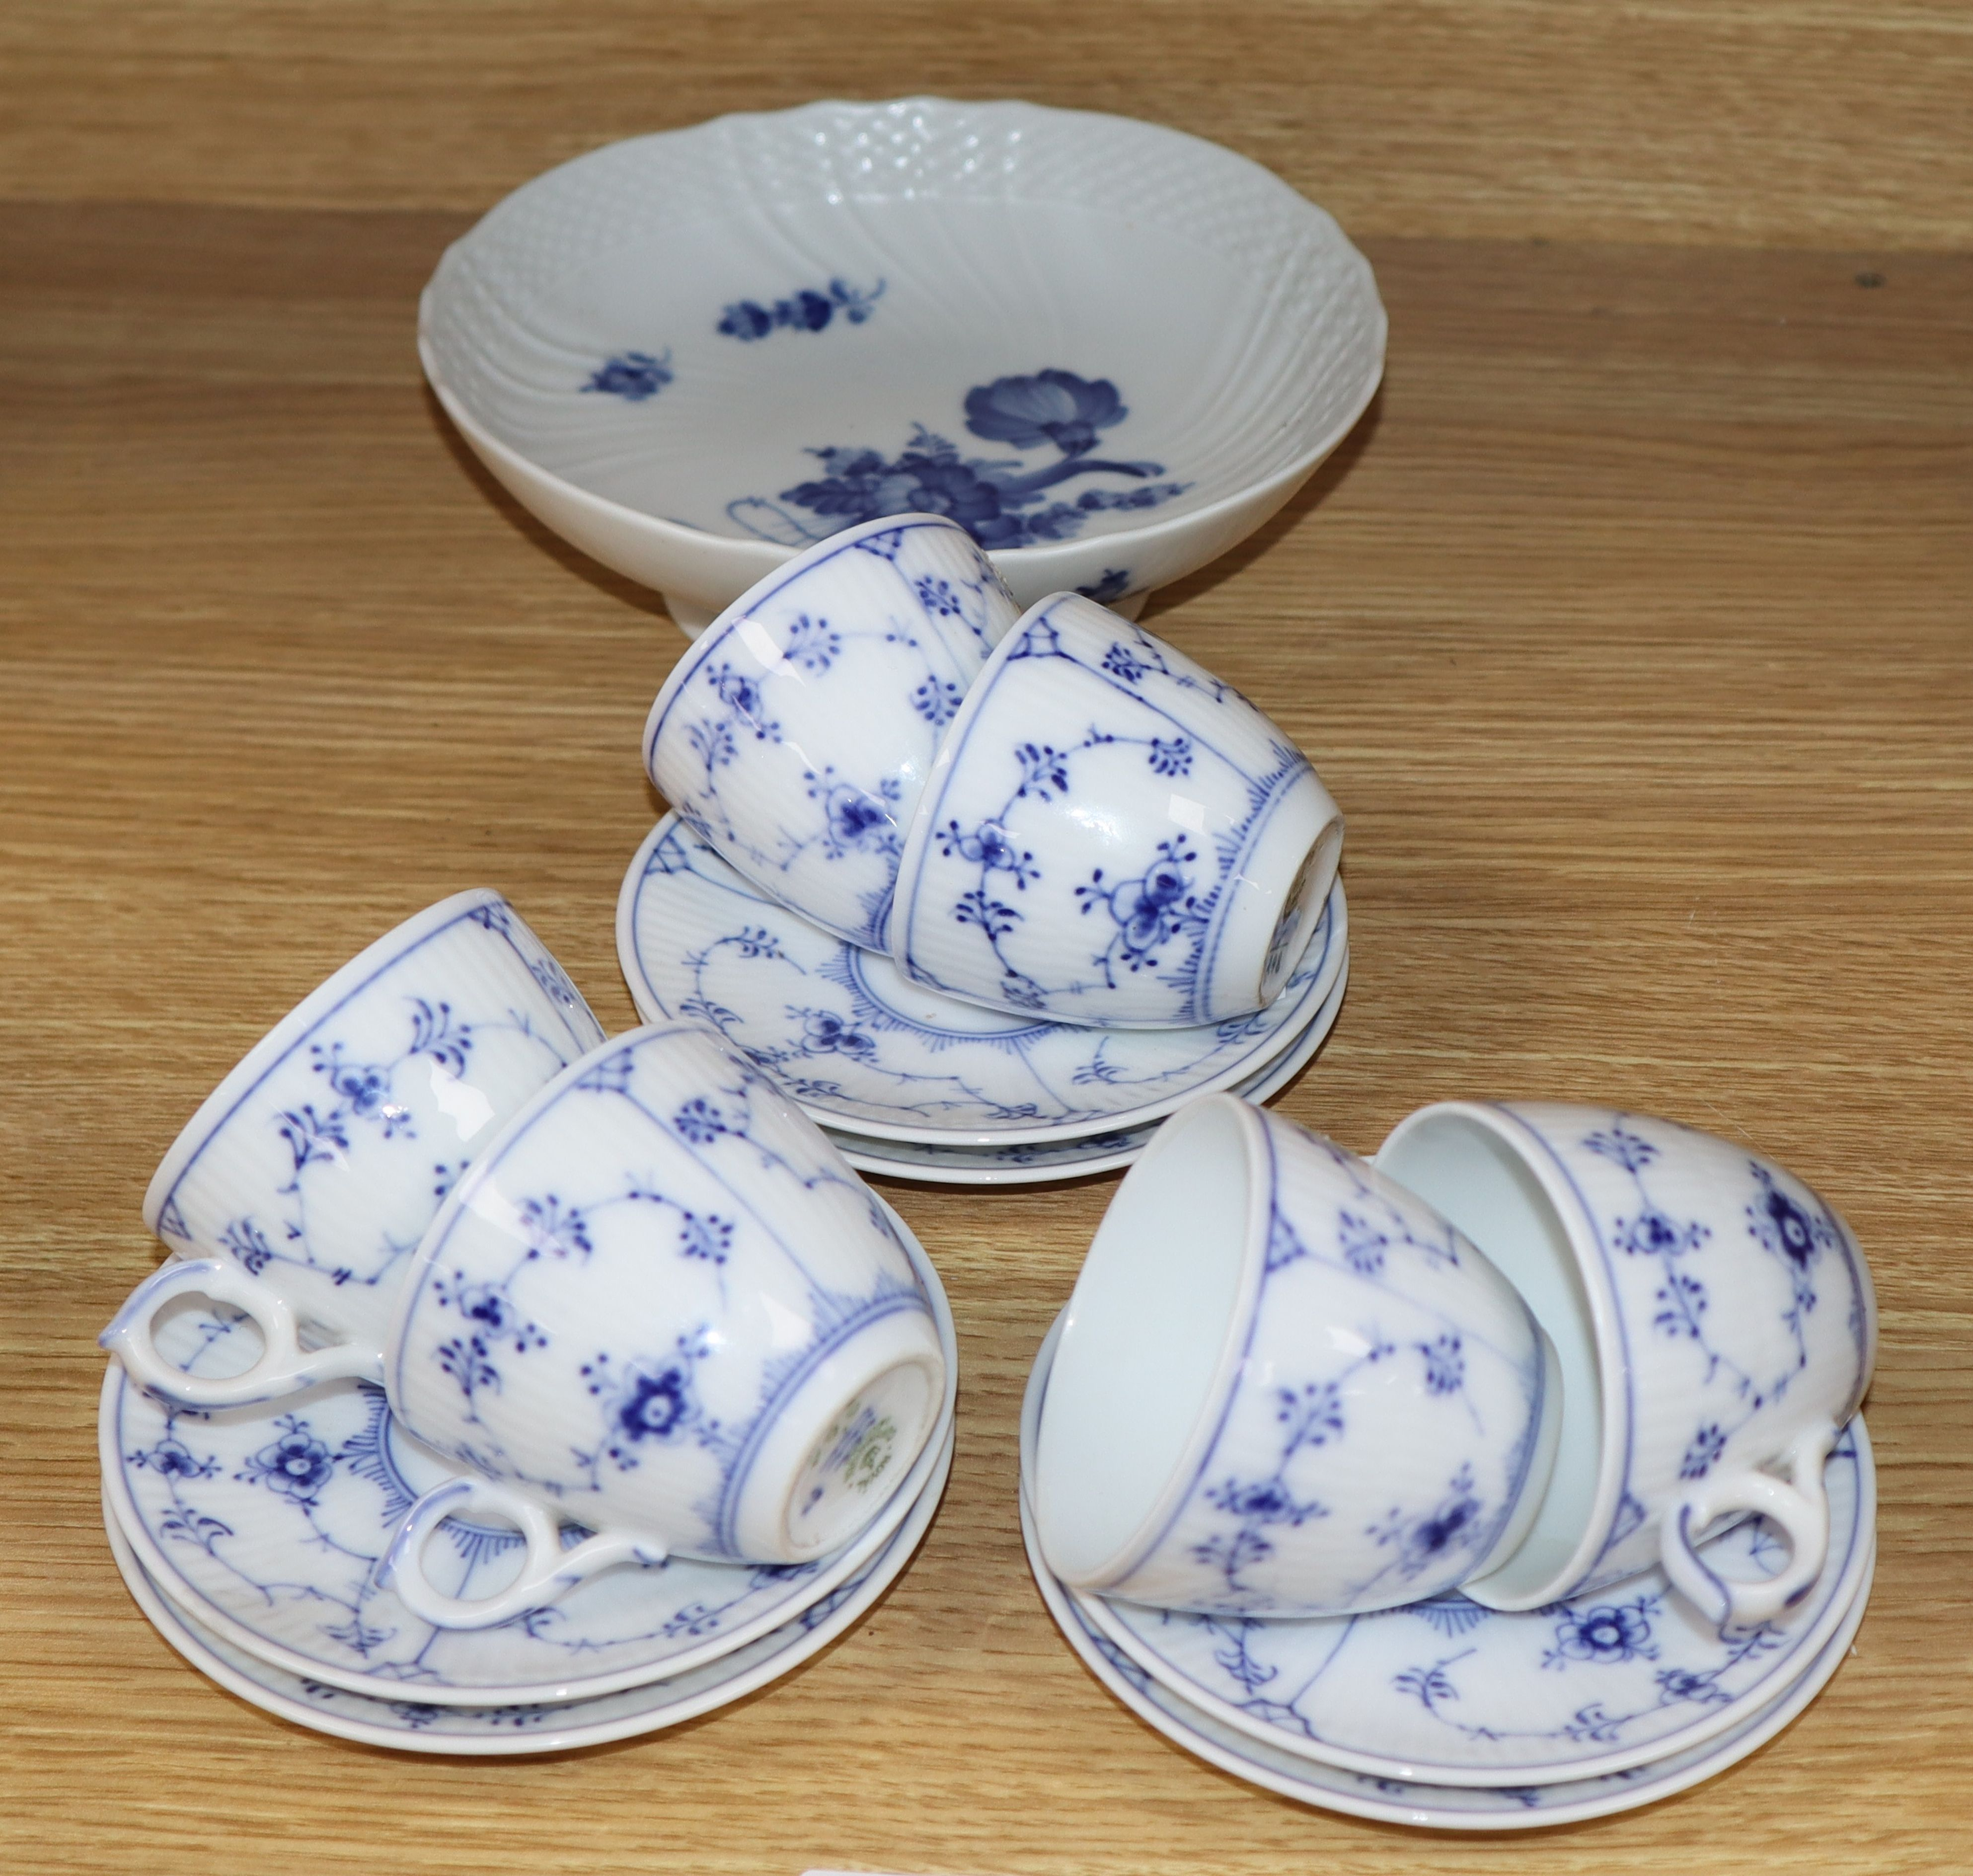 Lot 82 - A Royal Copenhagen part coffee set and a footed dish